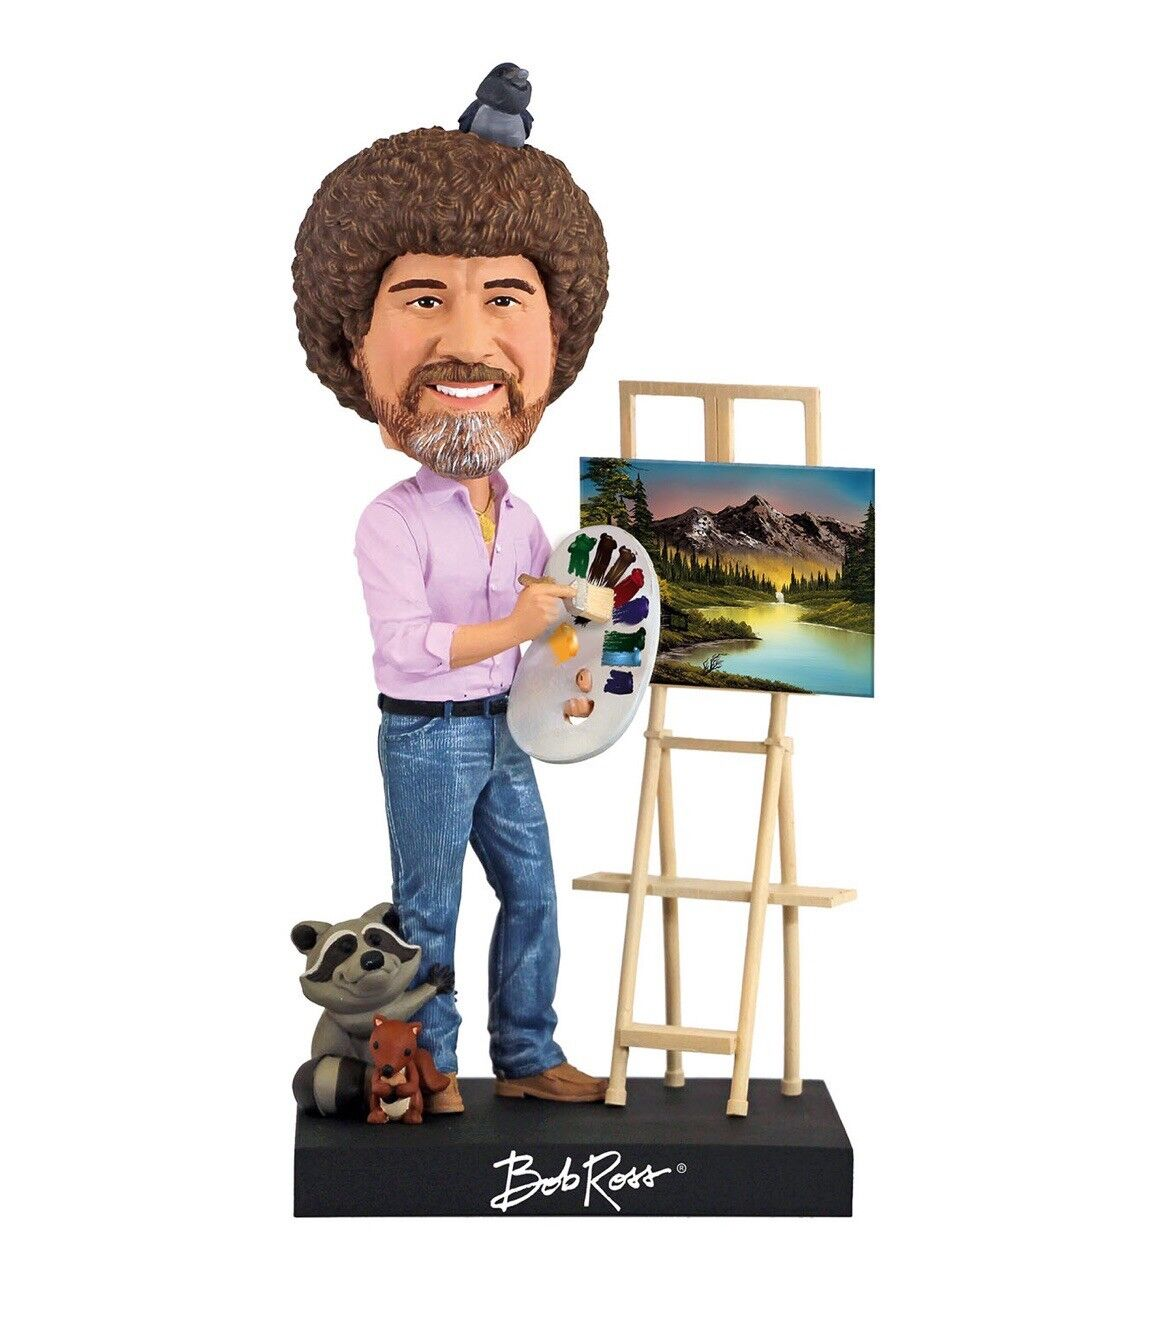 Bob Ross Limited Edition Figurine Bobblehead - In Collector's Box - 20cm